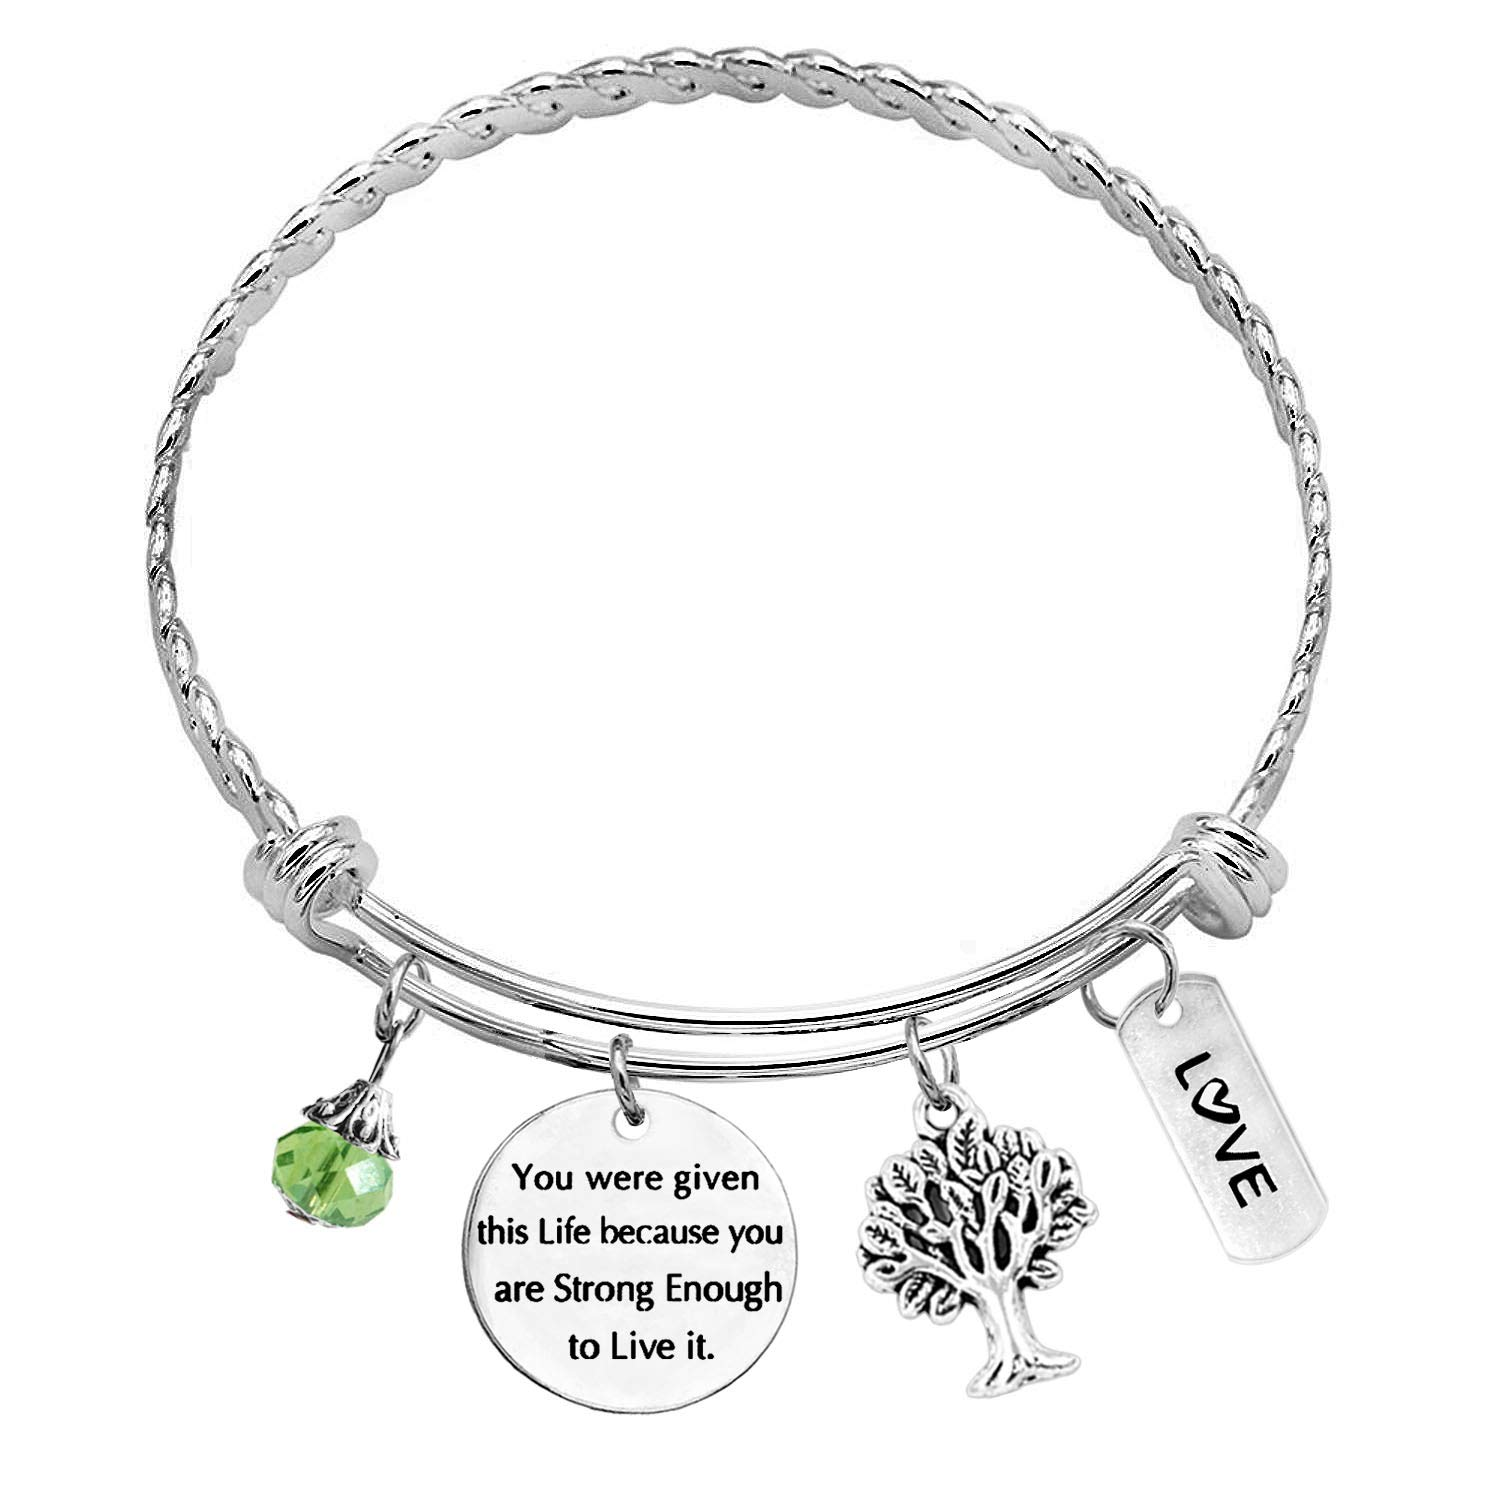 TISDA You were Given This Life Because You are Strong Enough to Live It Braided Twisted Bangle,Inspirational Birthday Gifts Charm Bracelets